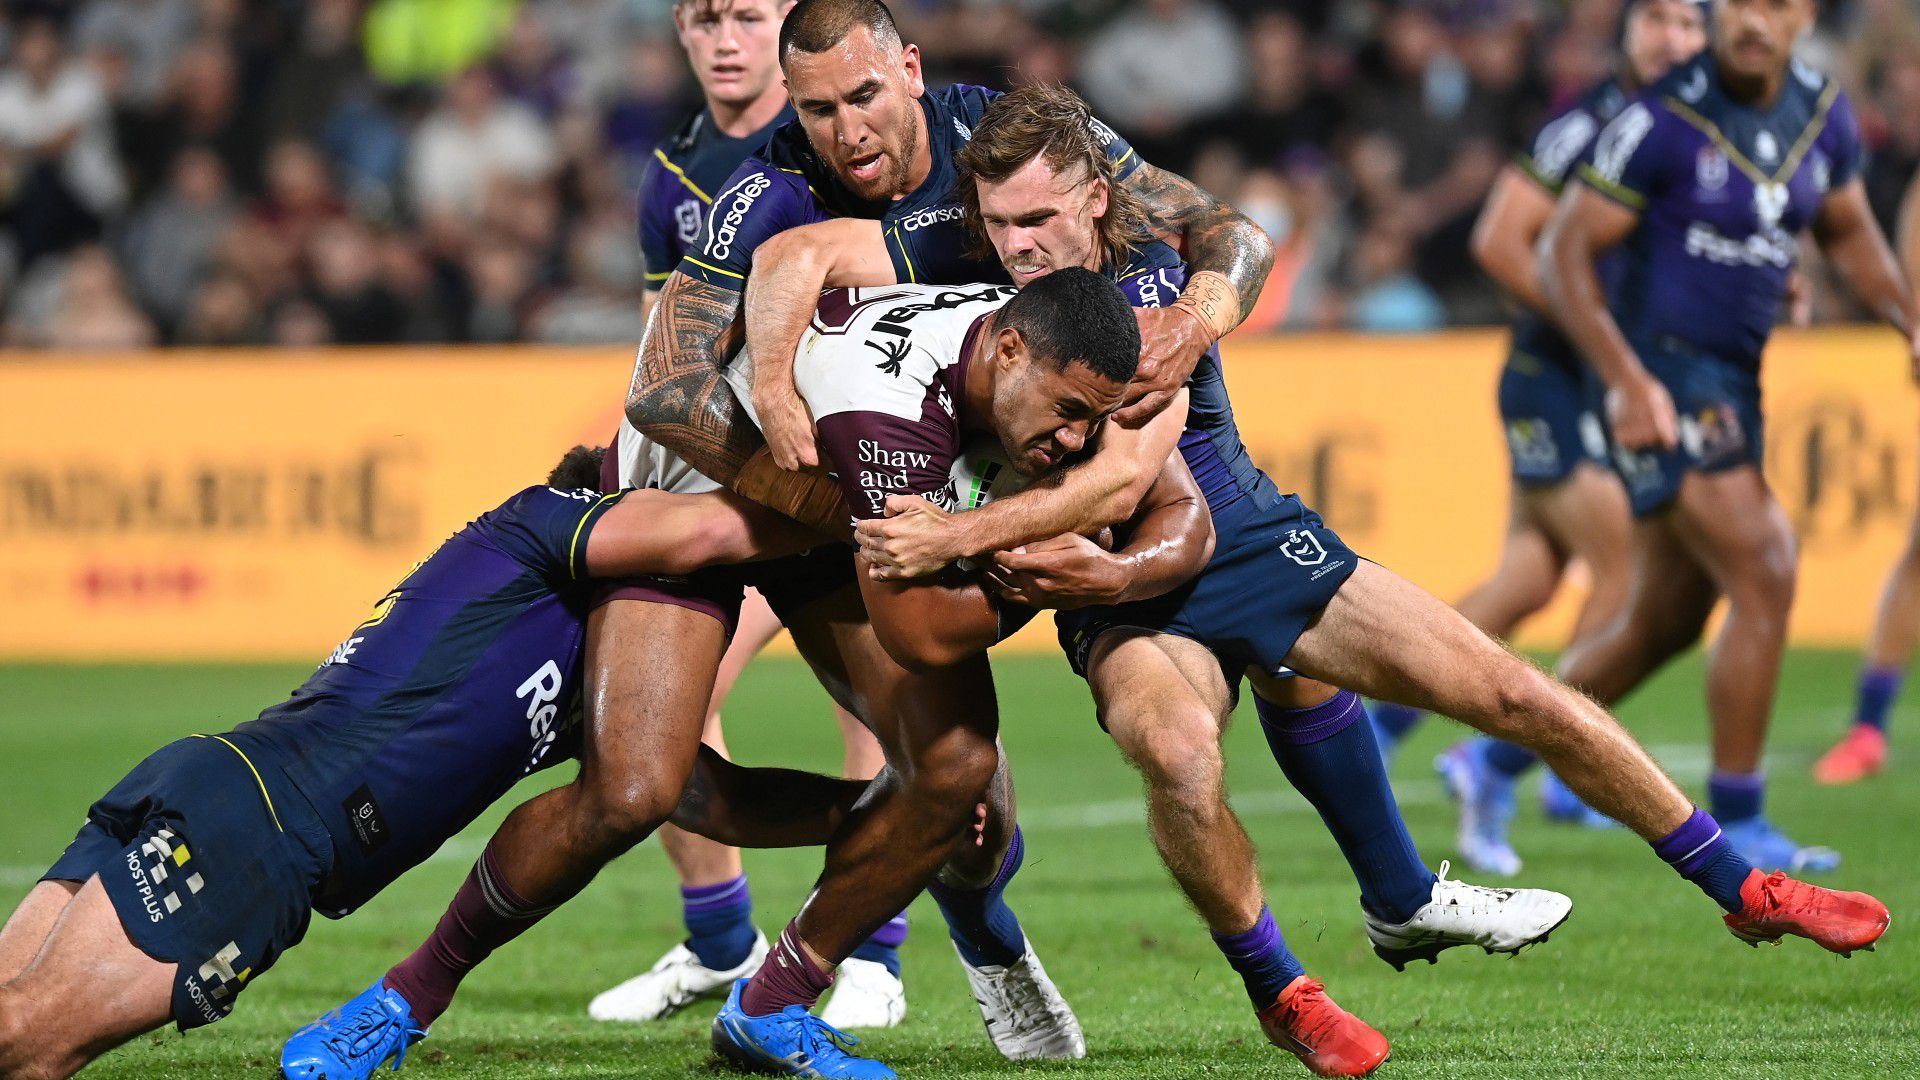 Inside eerie dressing room after Manly's heavy finals loss to Melbourne Storm